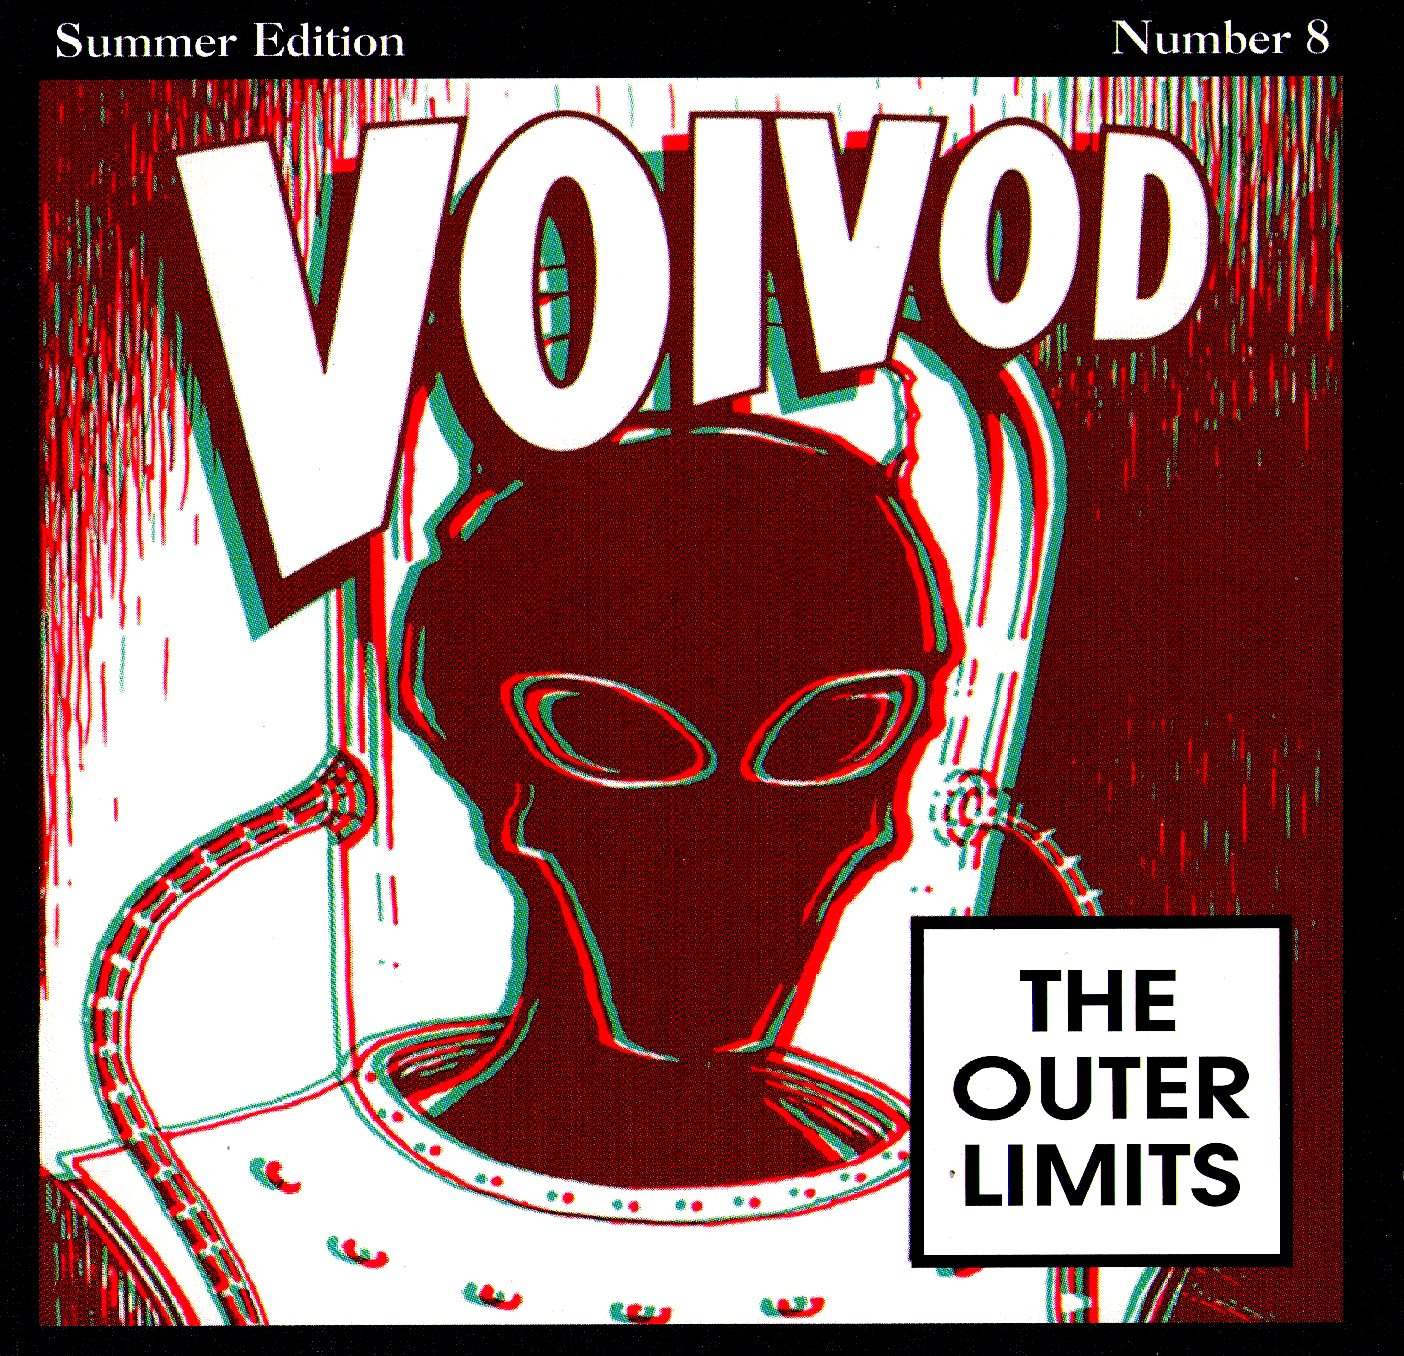 Album cover of the week: The Outer Limits